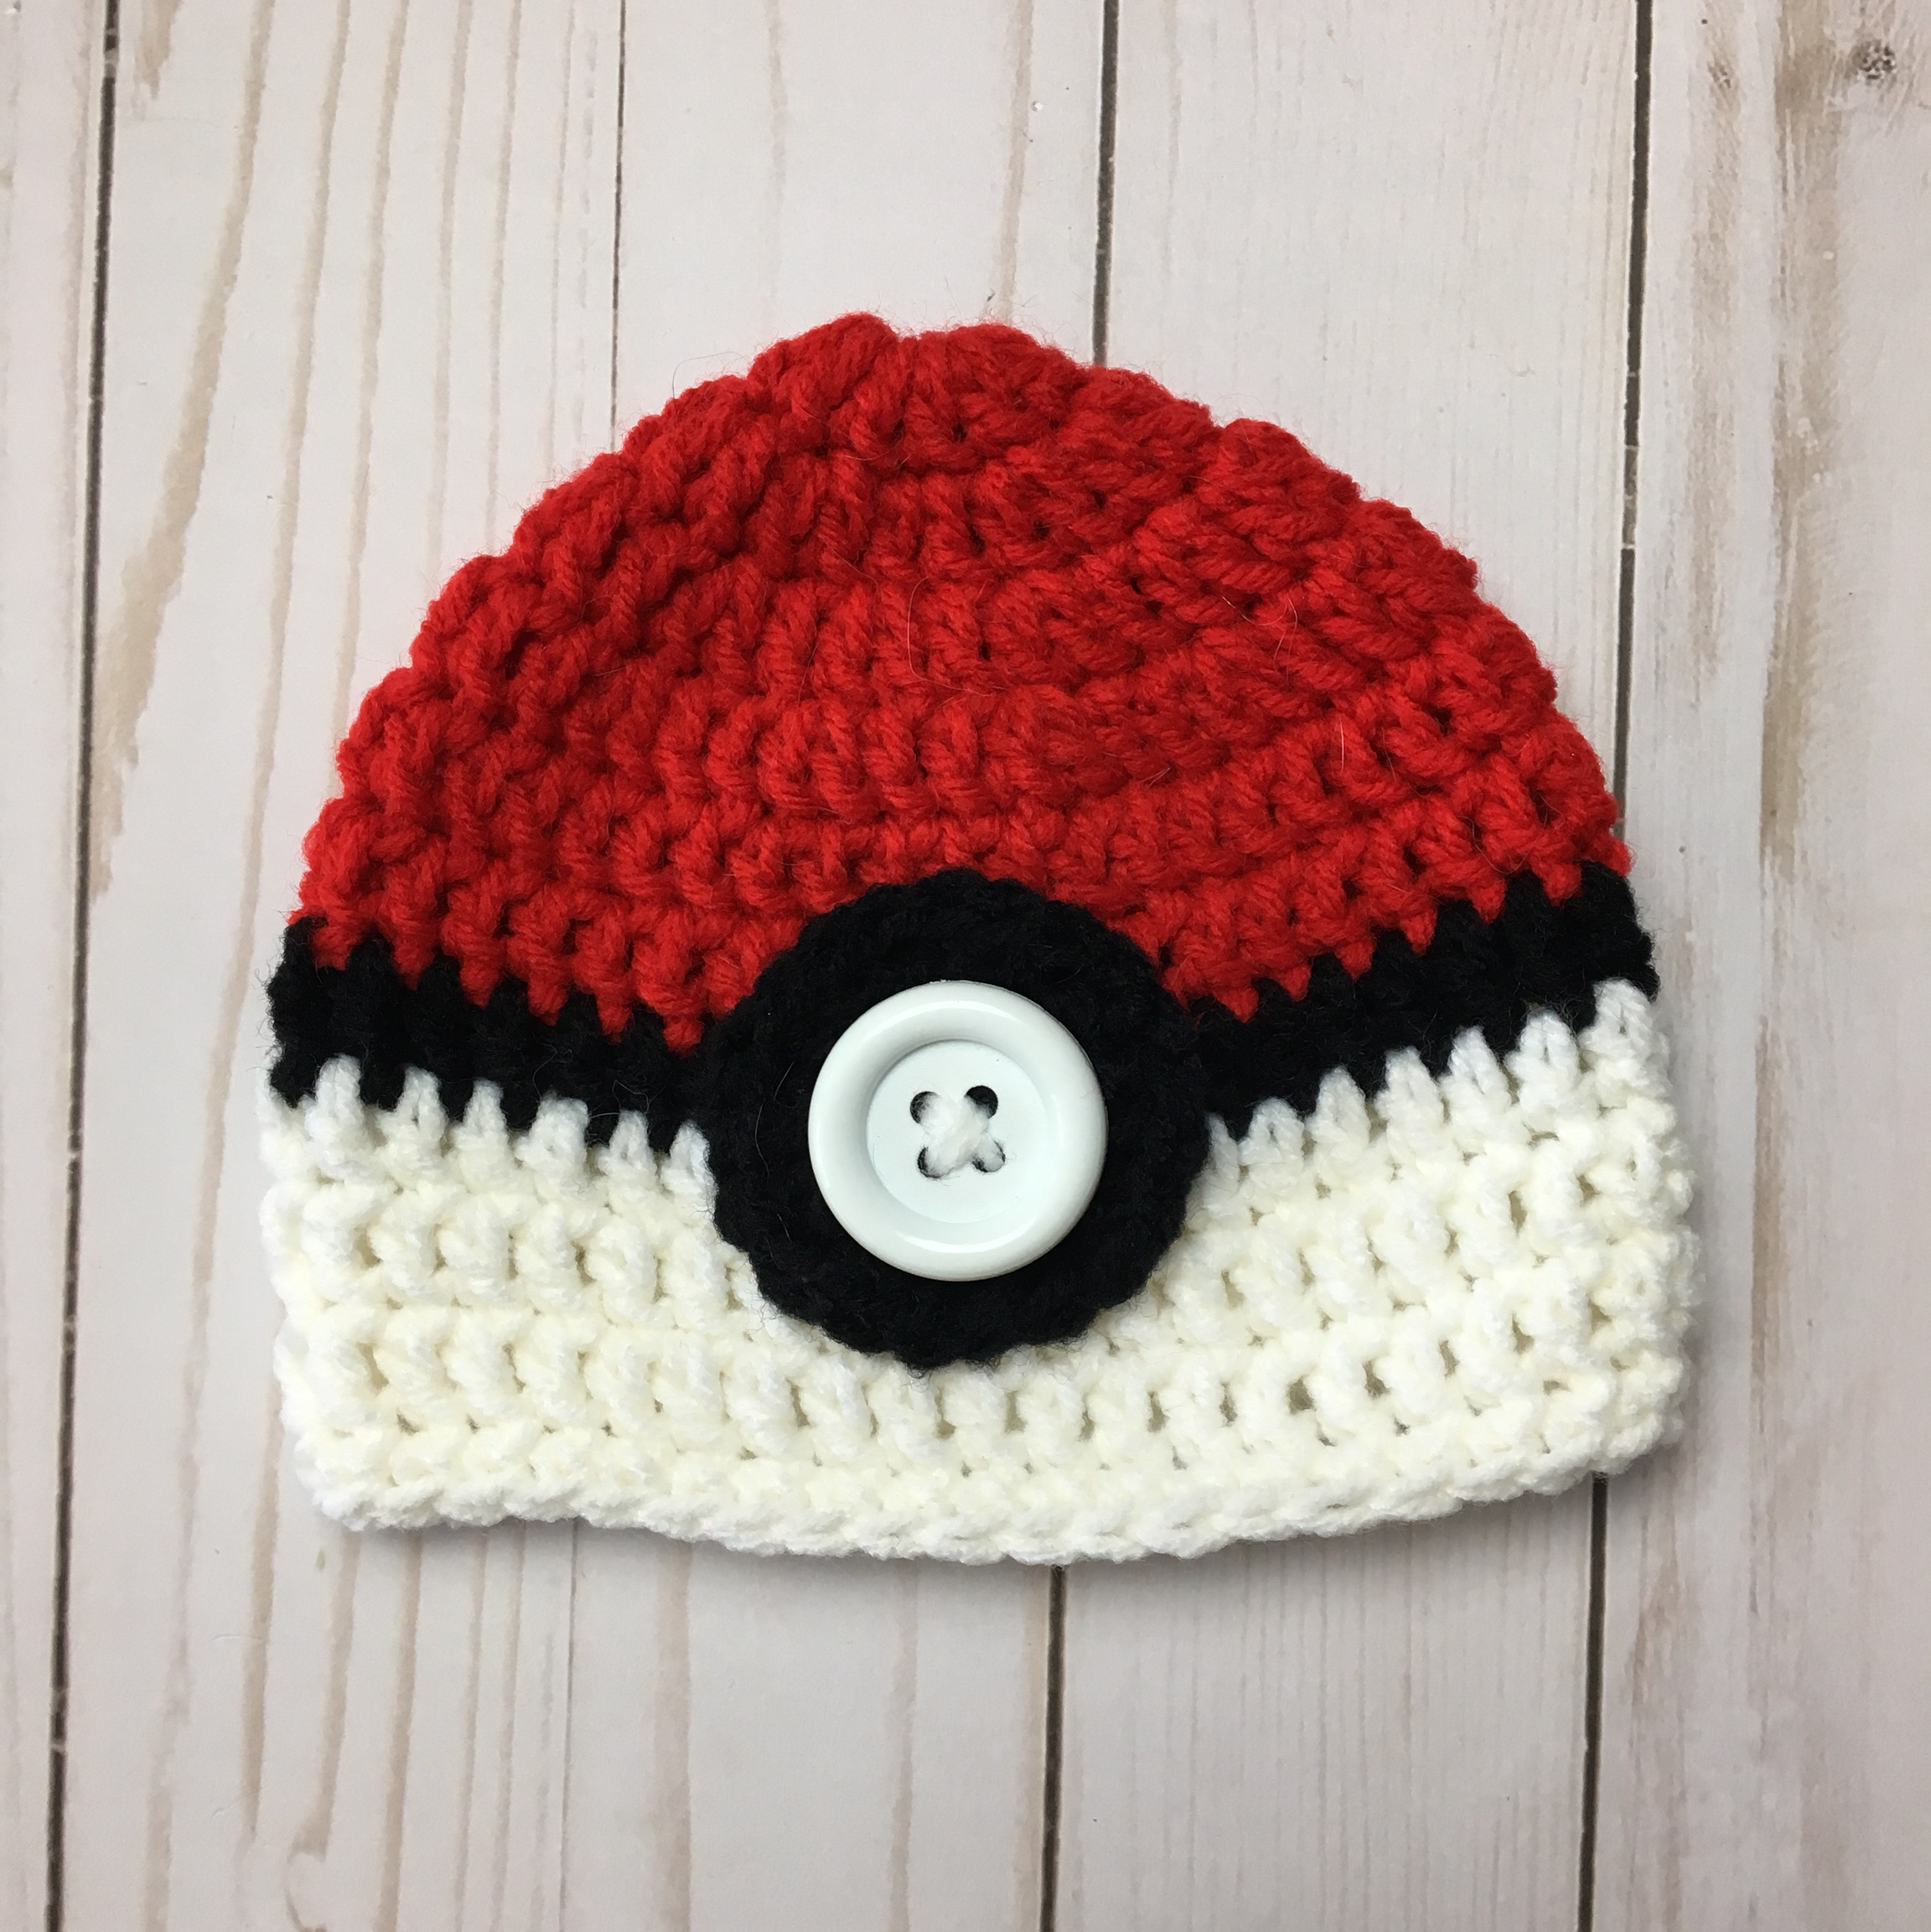 Ravelry: Poke'ball Hat pattern by Bonnie Jacobs | 2305x2304